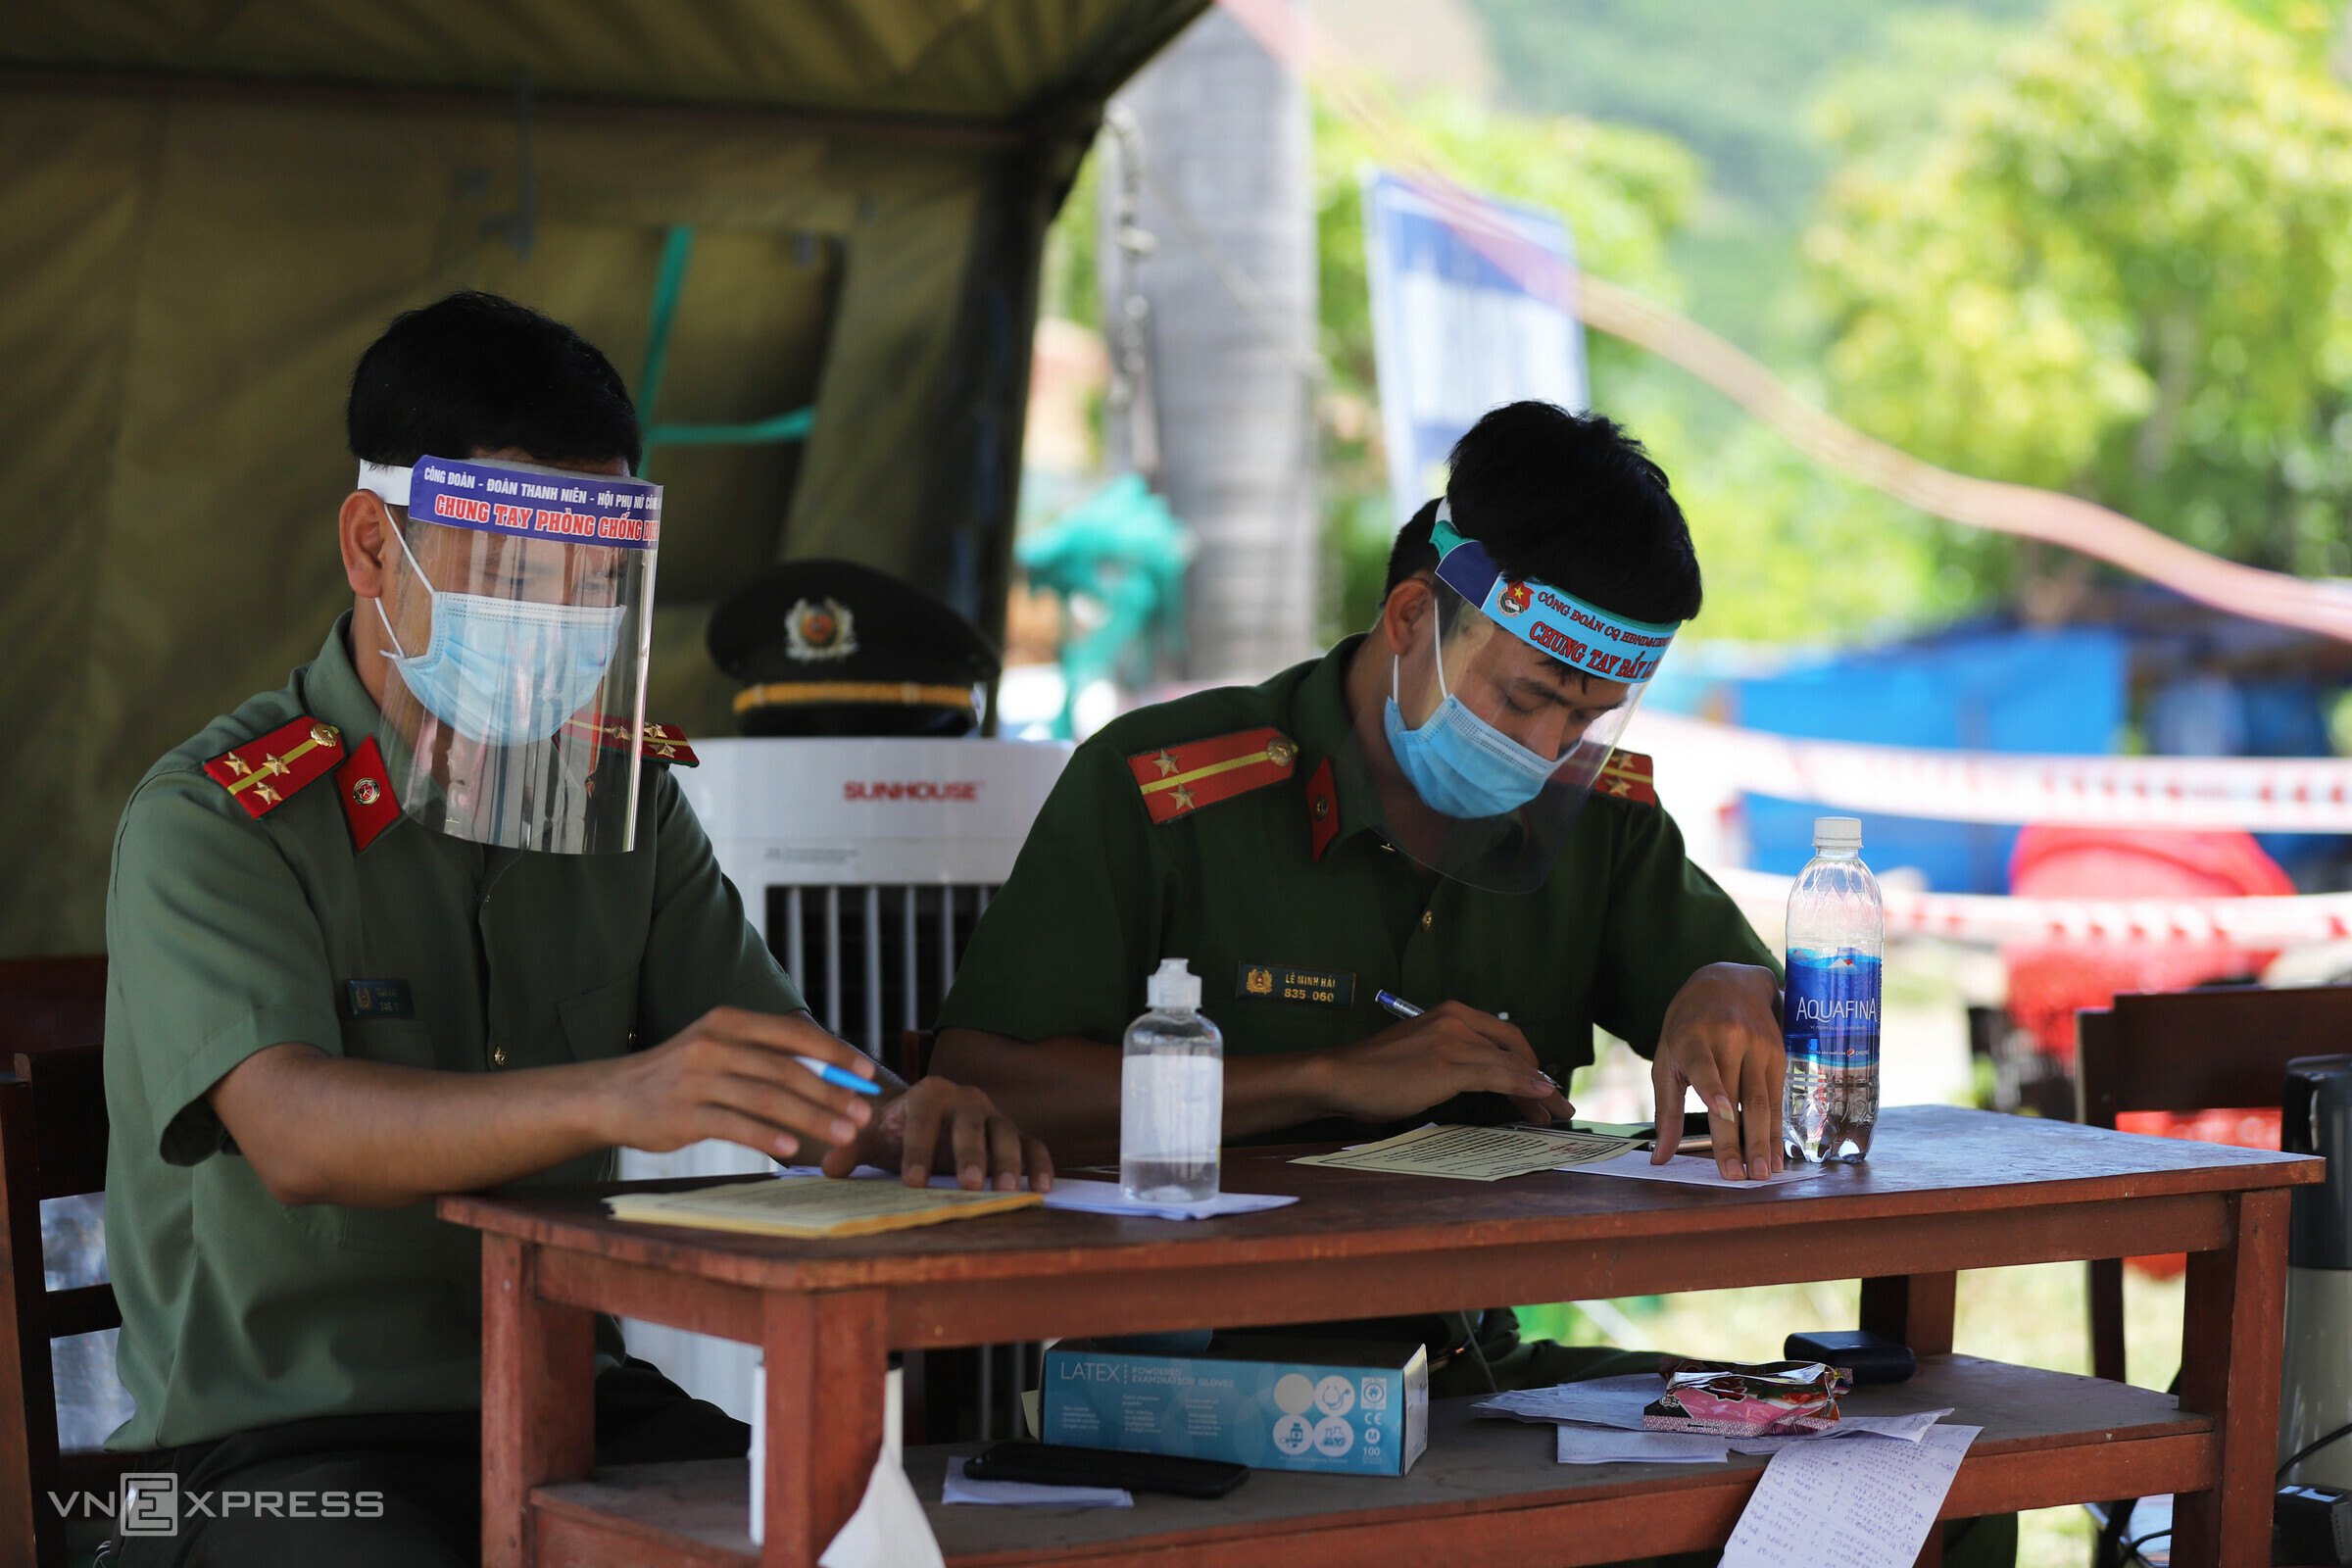 Restless, exhausted: People await centralized quarantine at Hue checkpoints